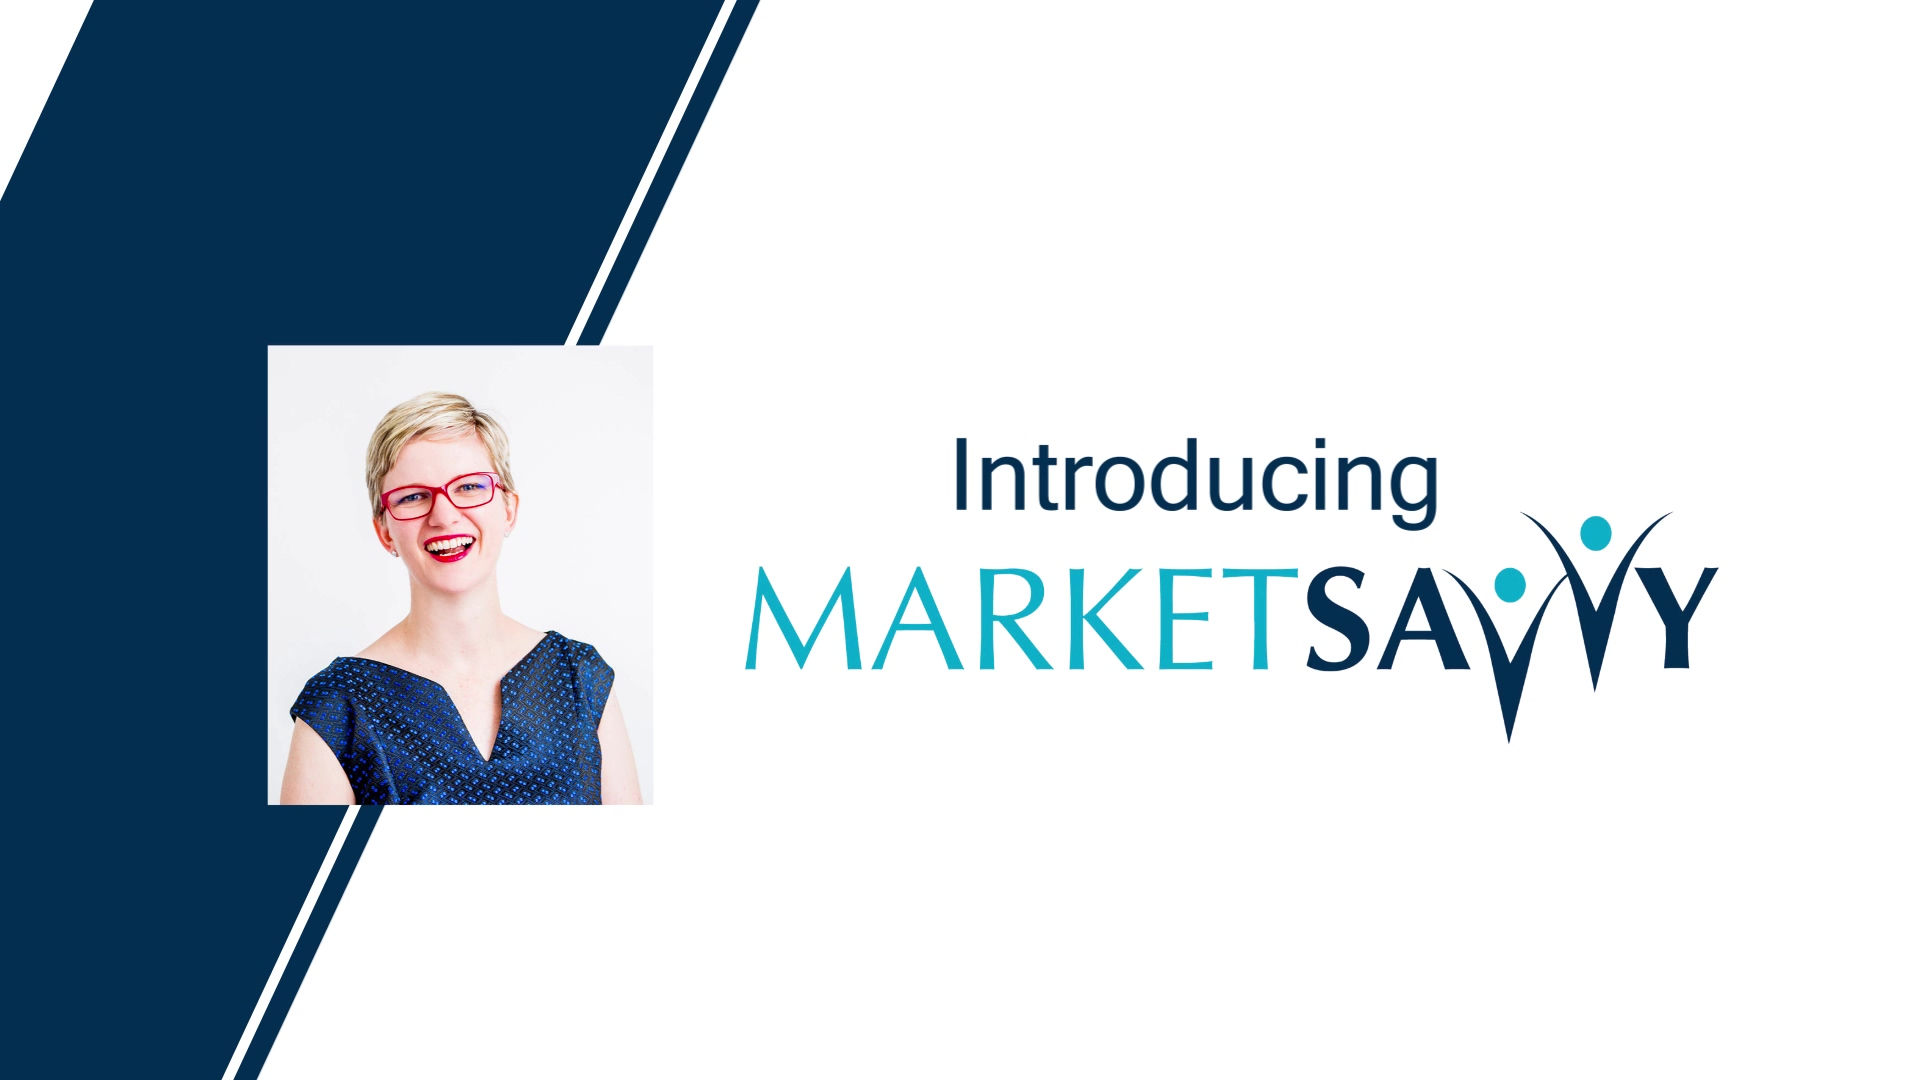 Market Savvy - Welcome Video for About page